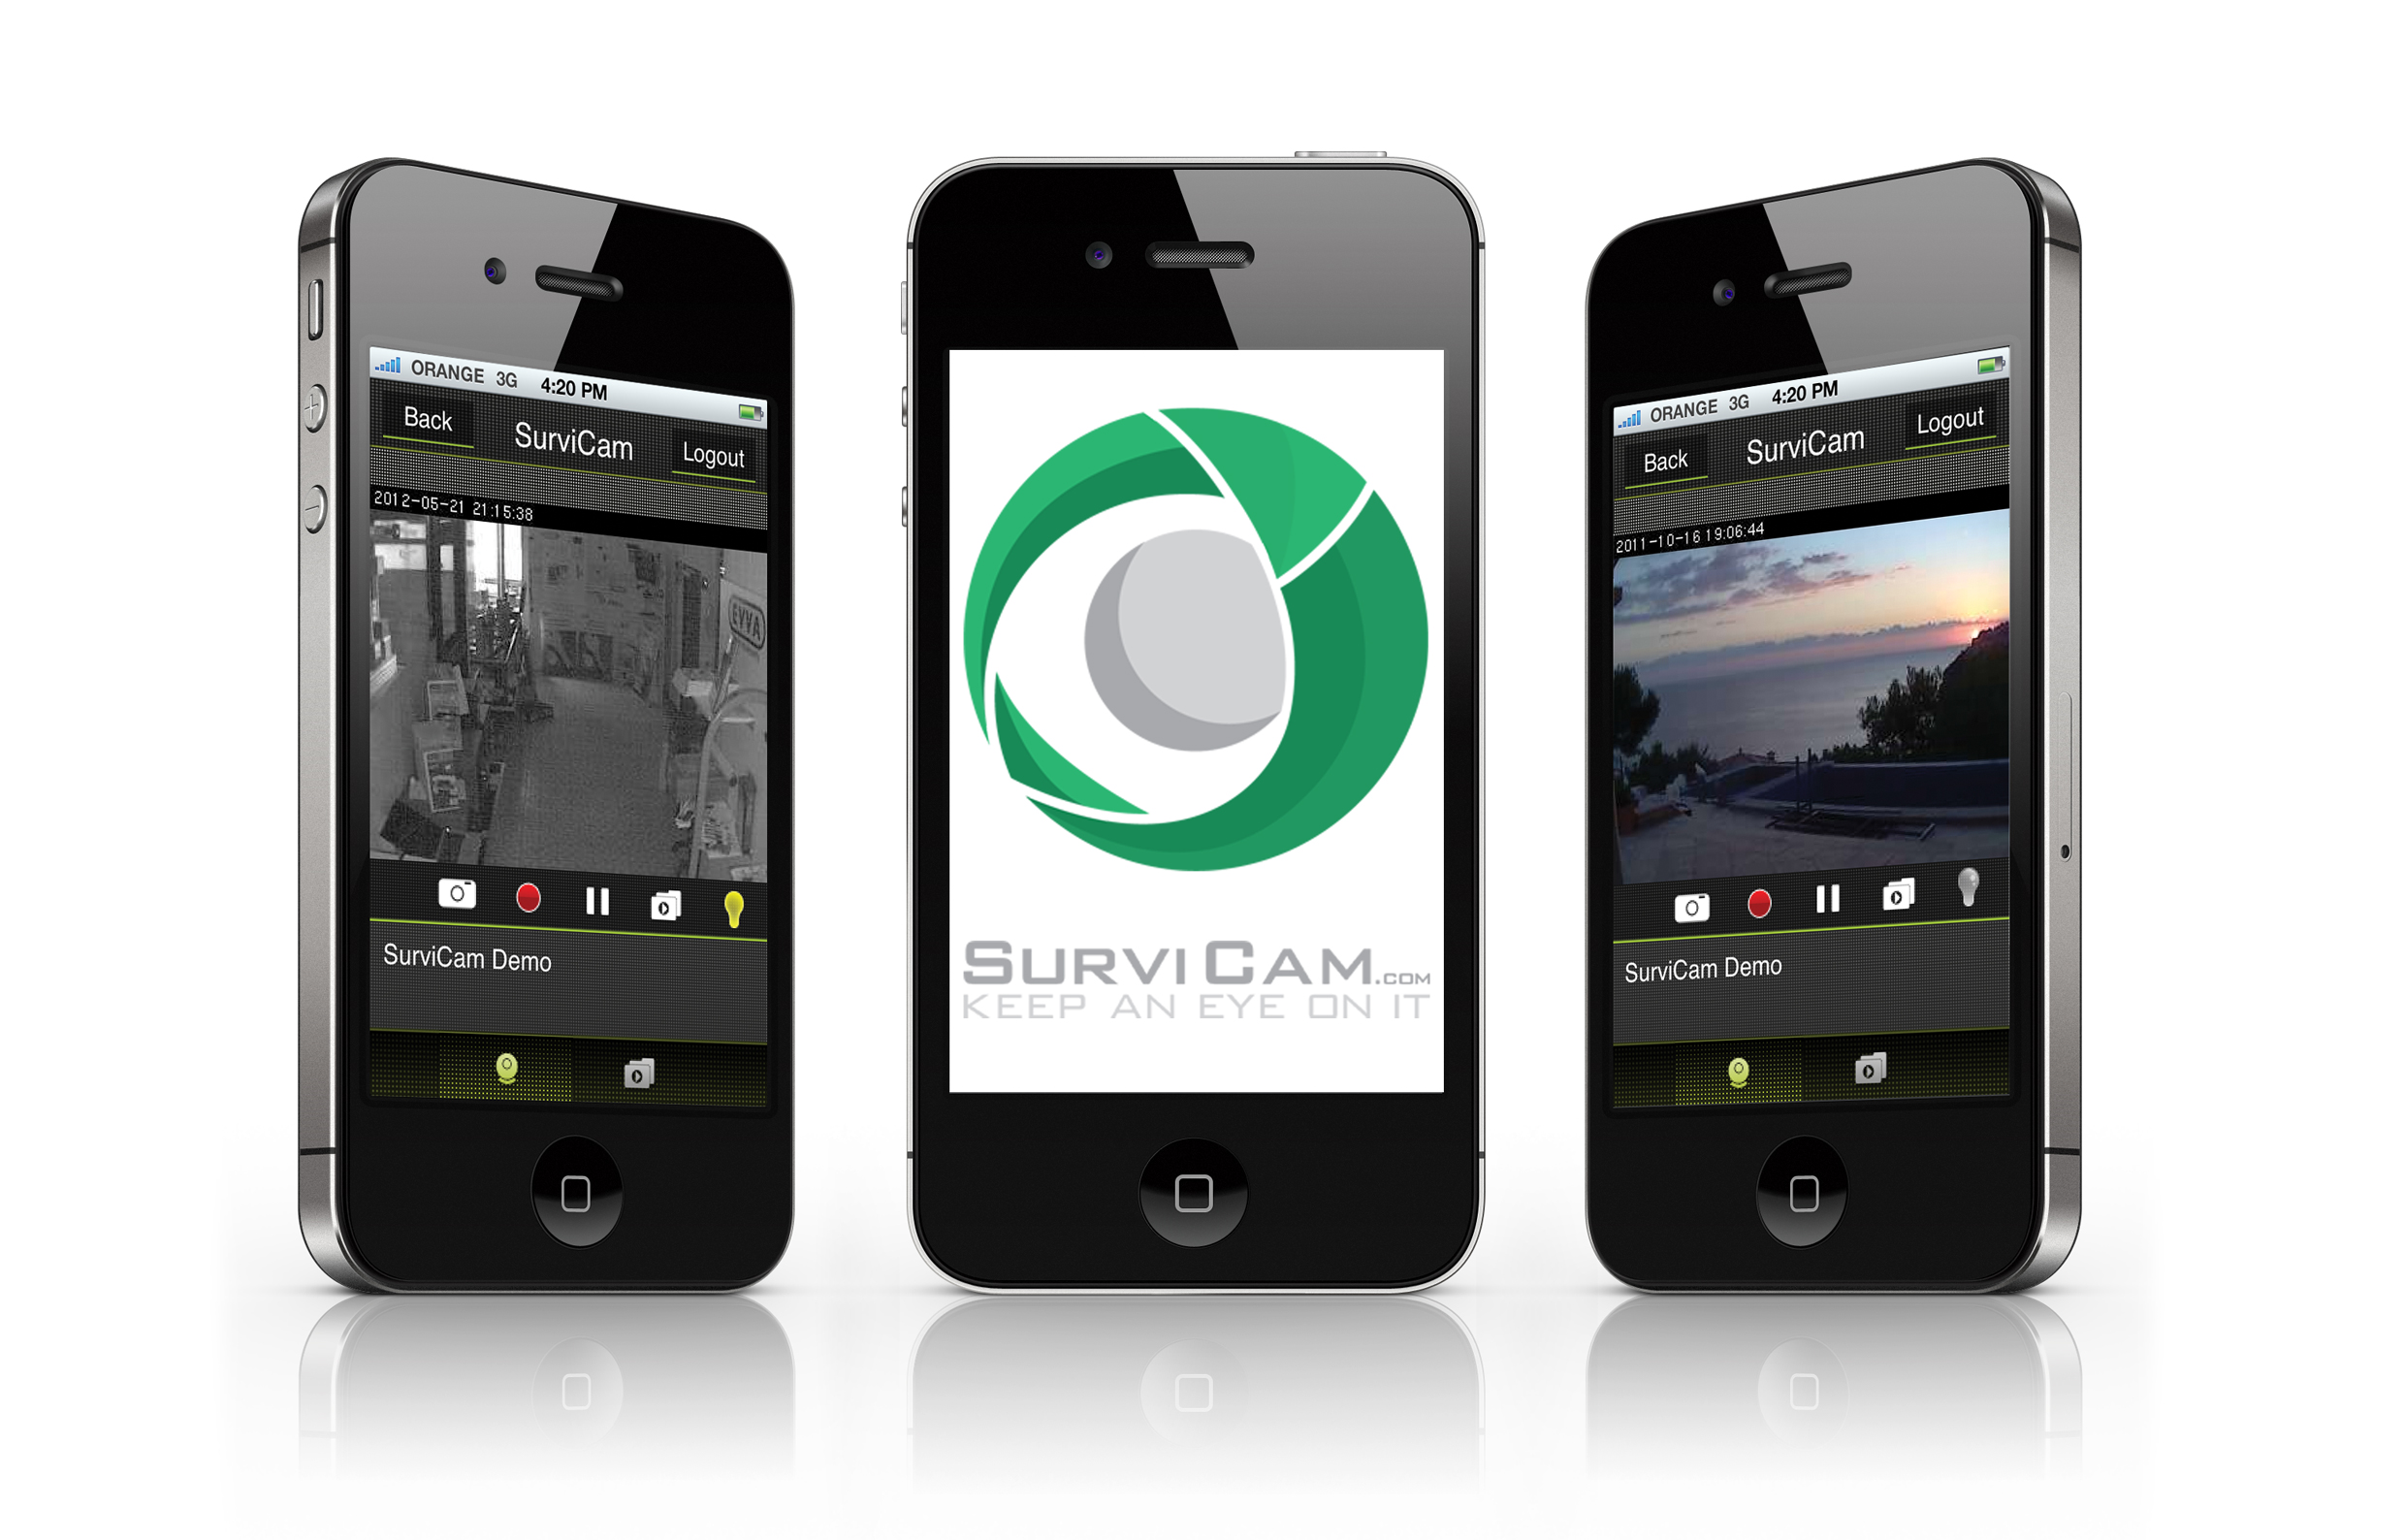 SurviCam iPhone App Screenshots